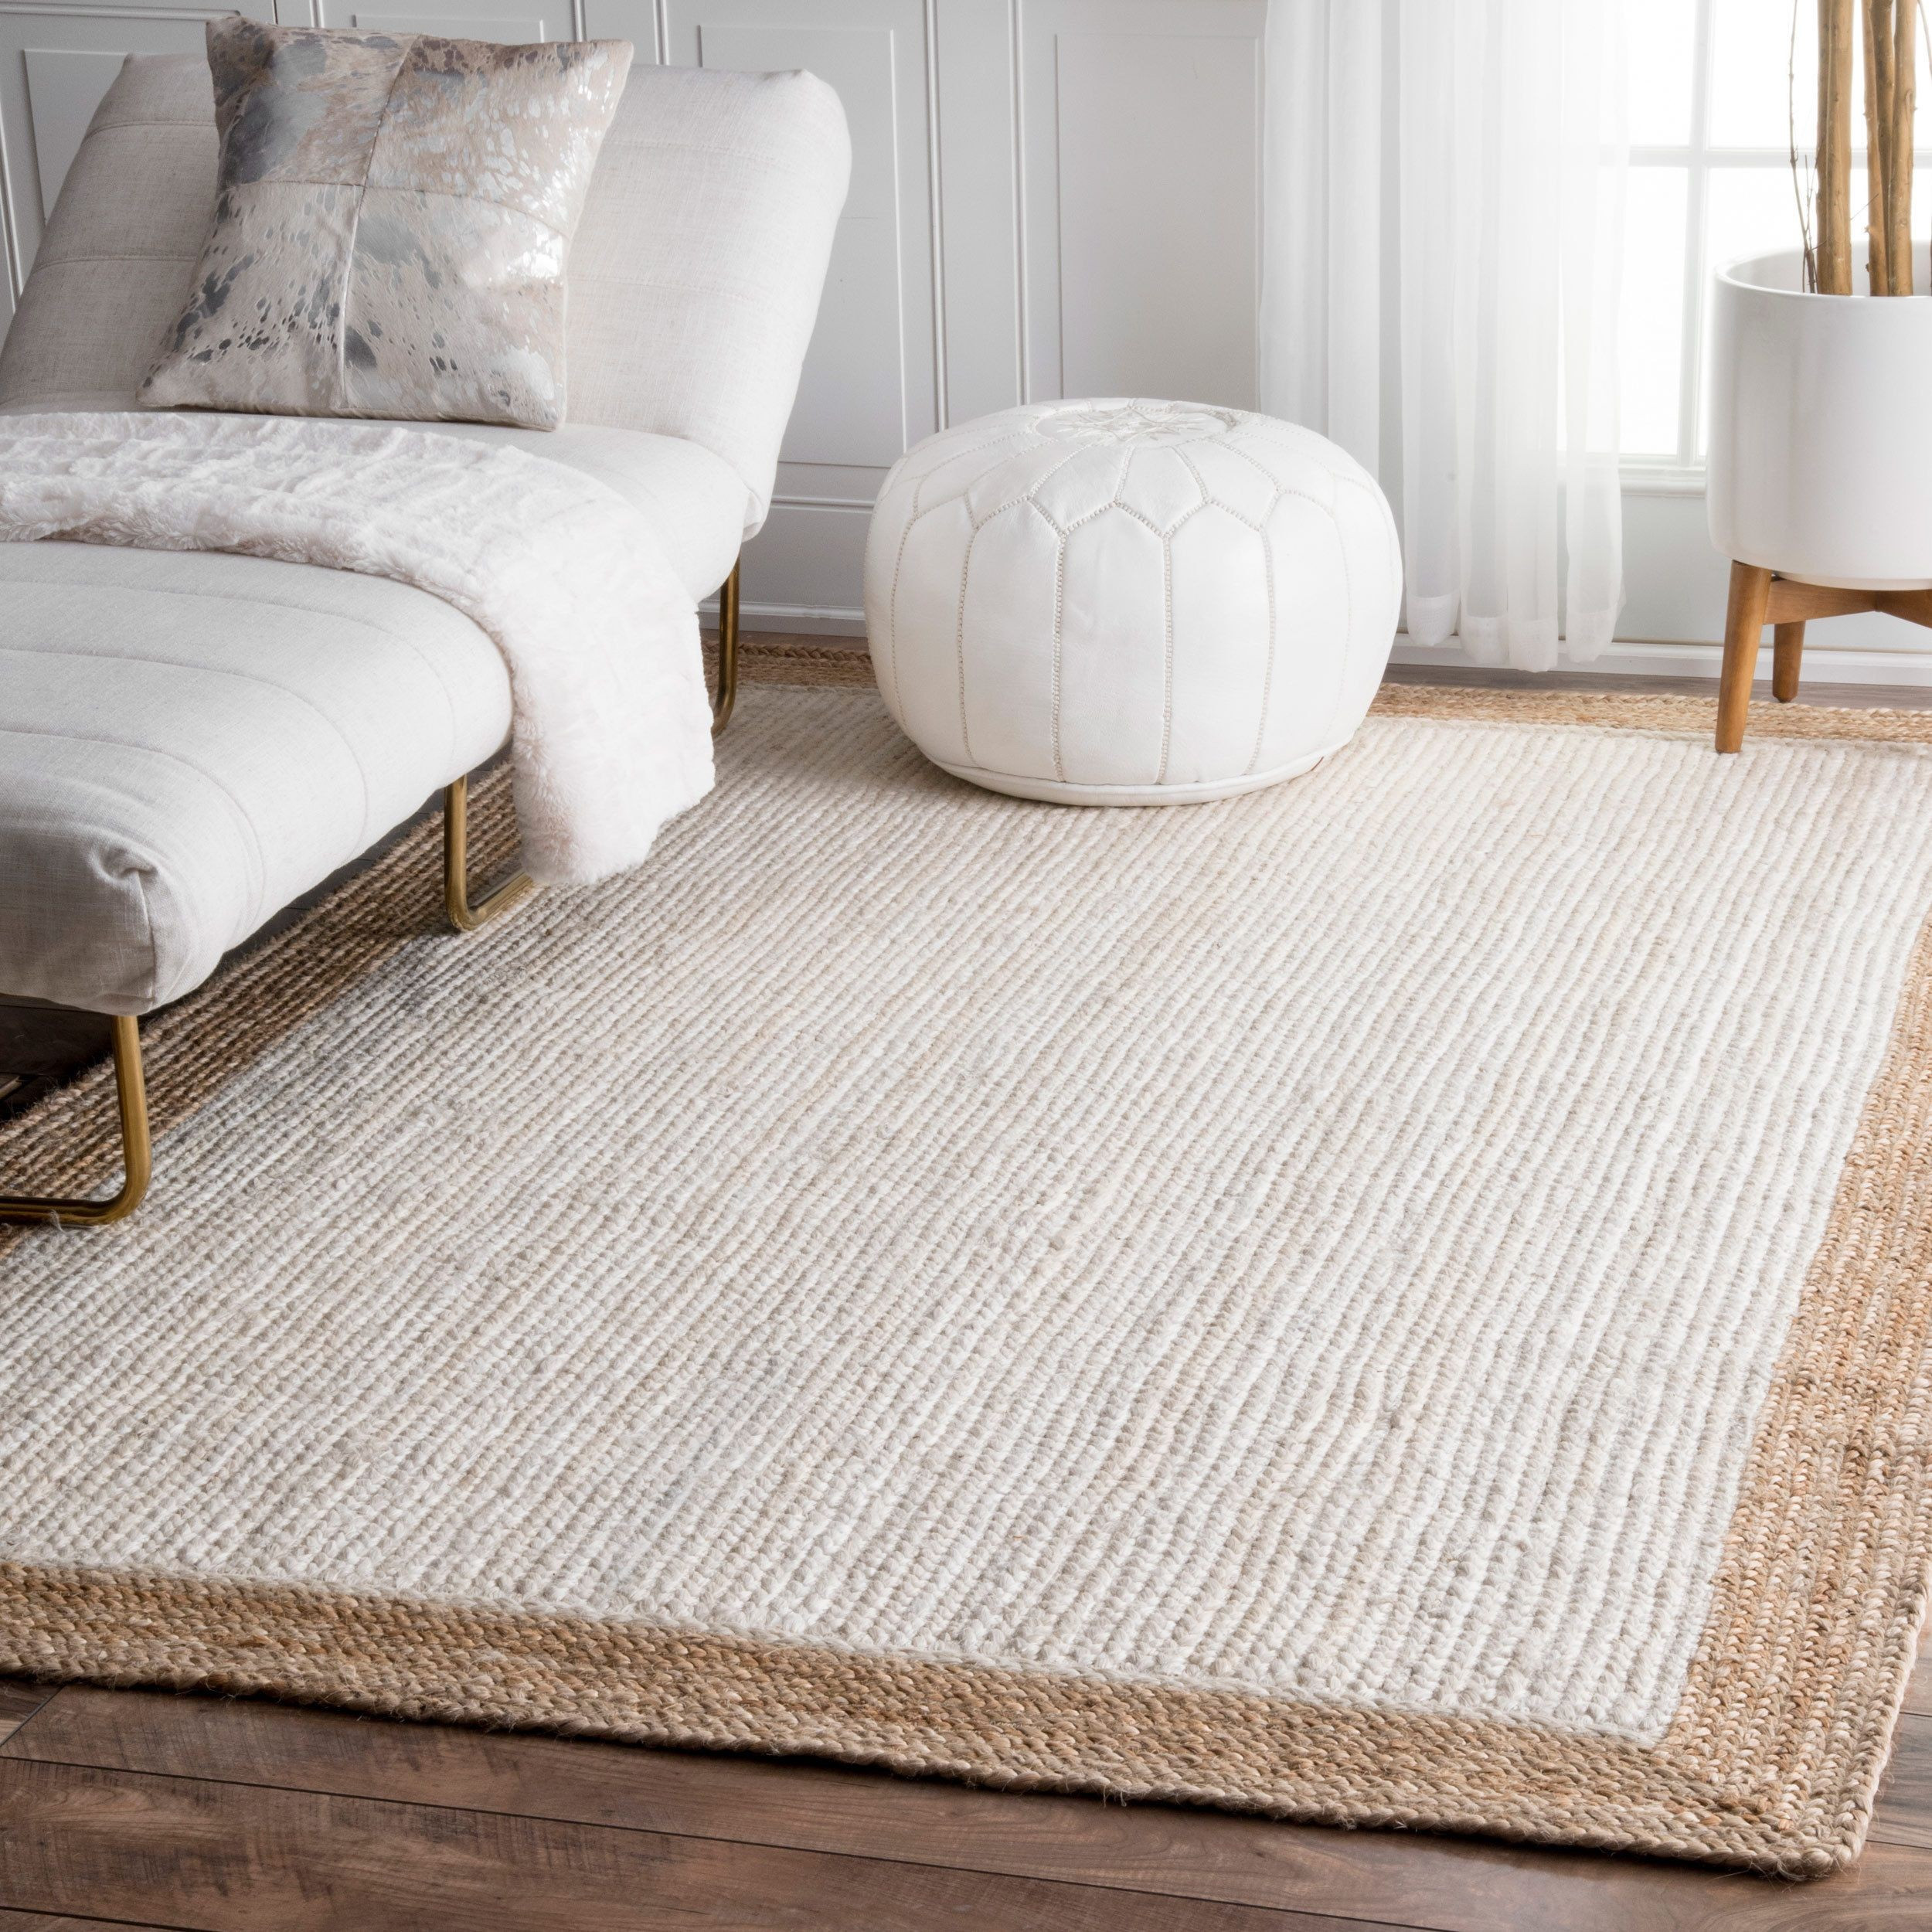 hardwood flooring prices of how to buy an area rug for living room lovely foyer area rugs area throughout how to buy an area rug for living room awesome nuloom alexa eco natural fiber braided